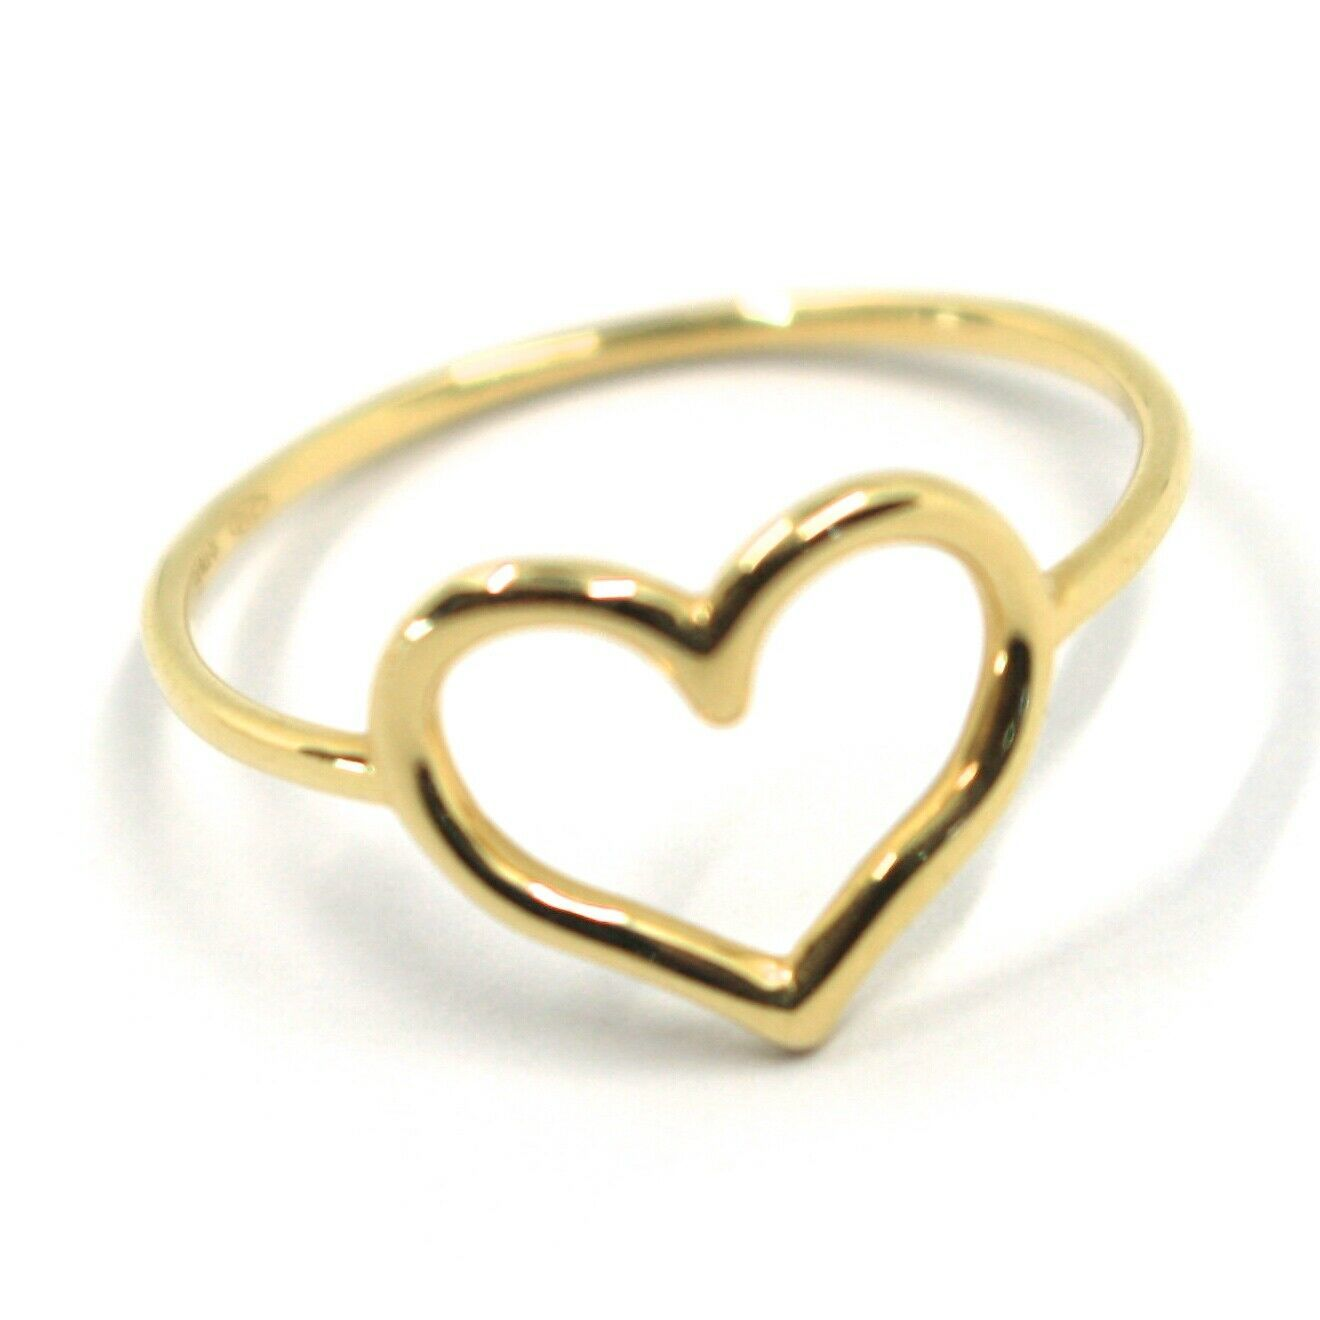 SOLID 18K YELLOW GOLD HEART LOVE RING, 10mm DIAMETER HEART CENTRAL MADE IN ITALY